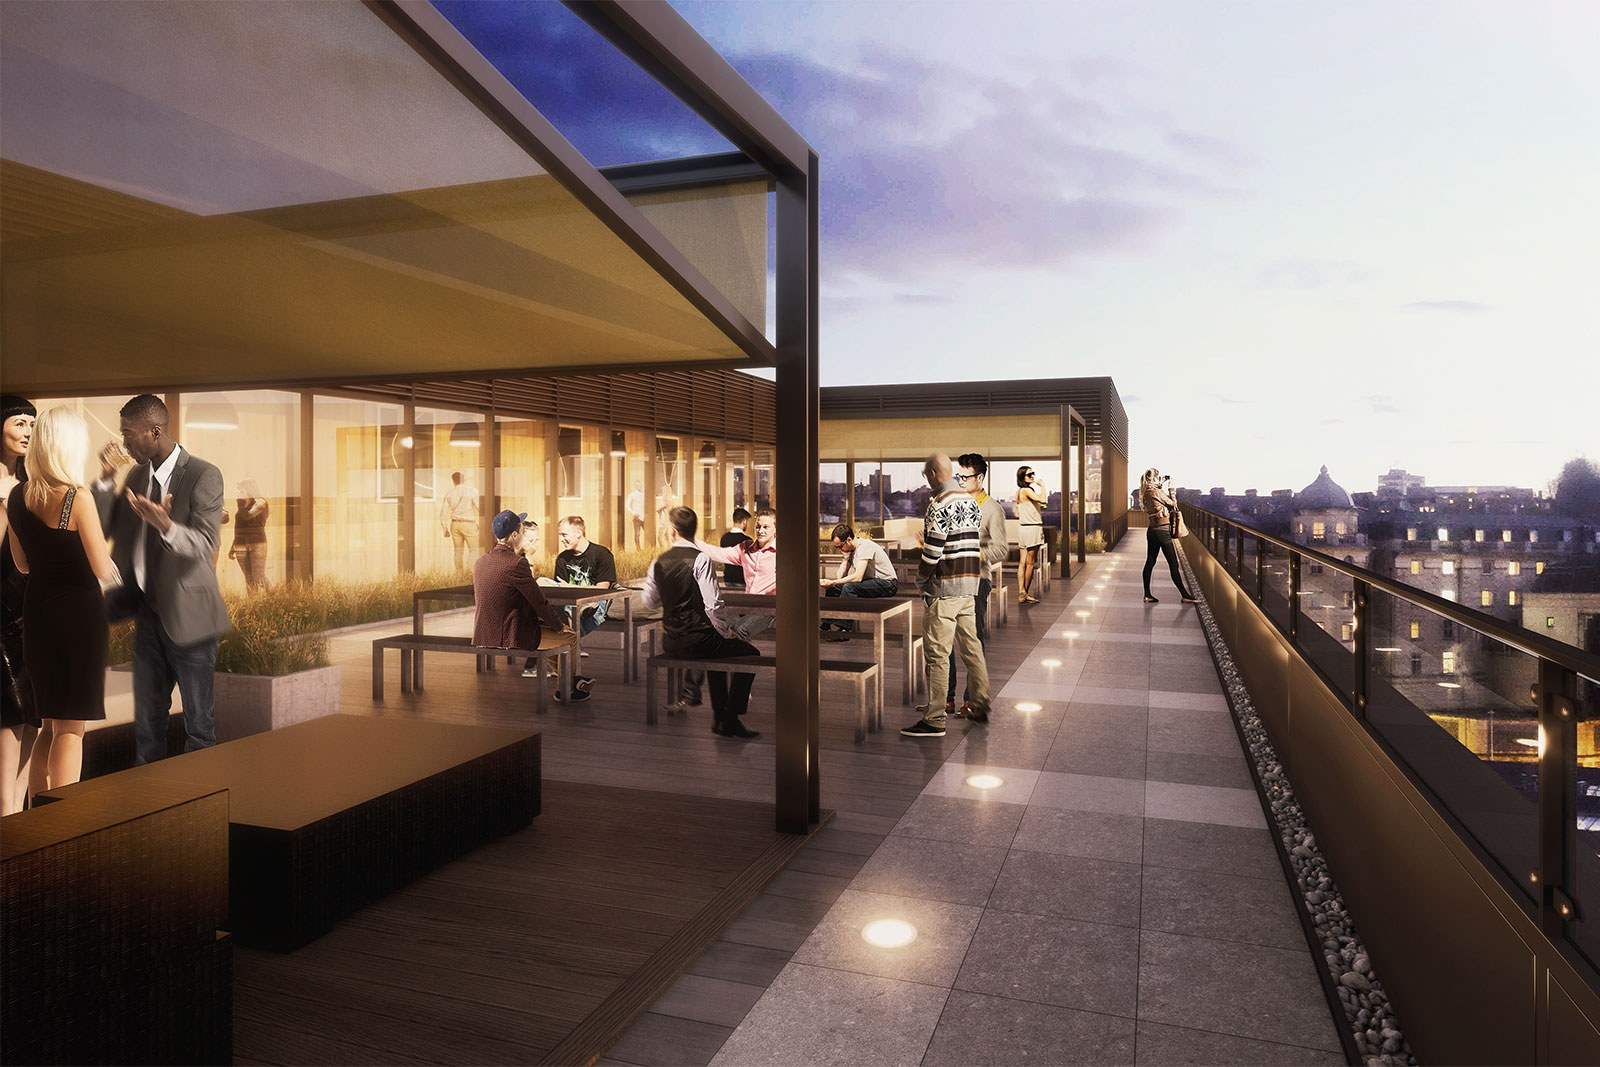 Assembly Bristol: Building A: Roof Terrace at night